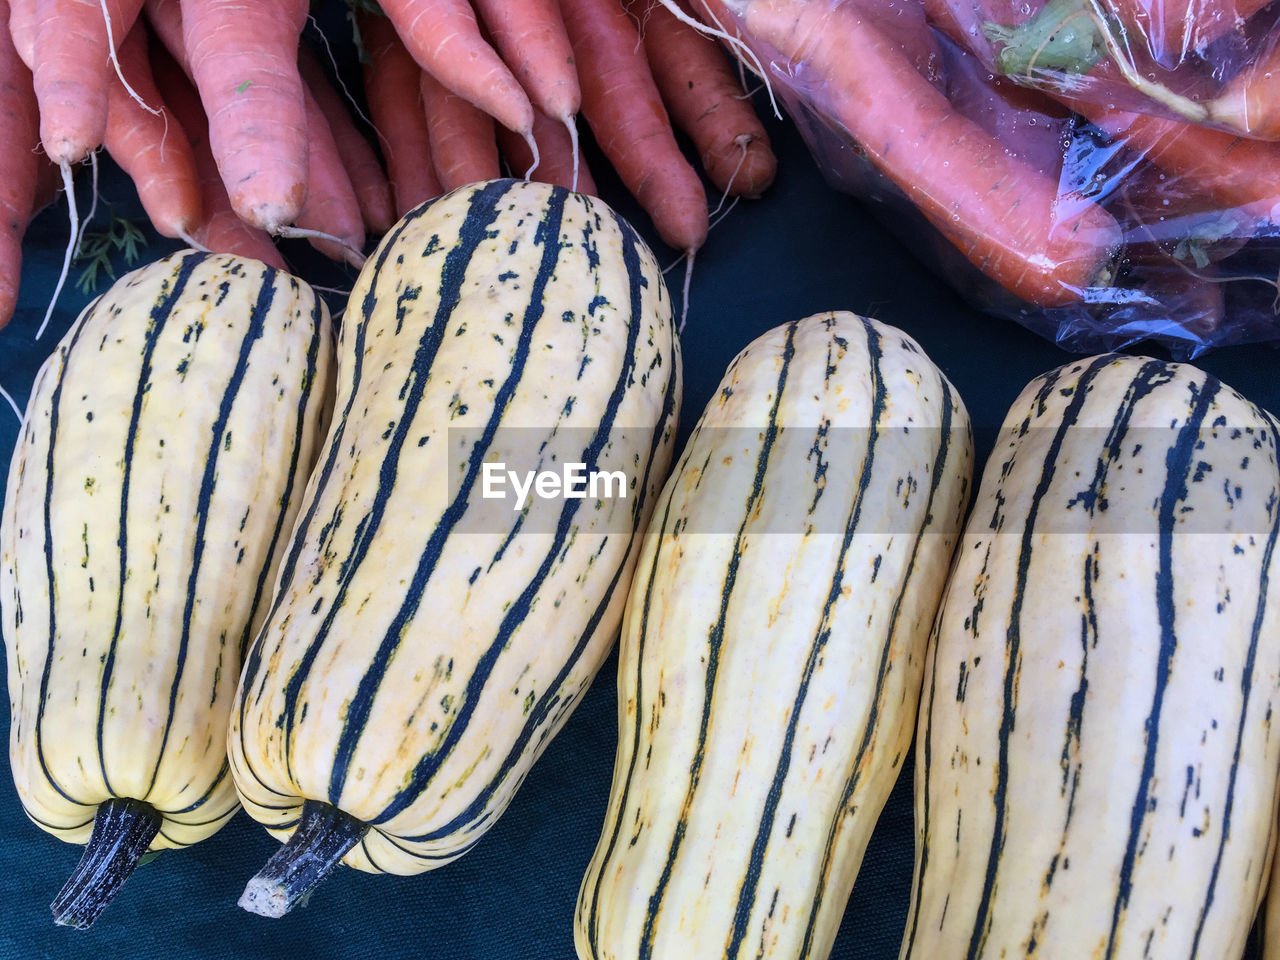 Delicata Squash And Carrots For Sale At Market Stall